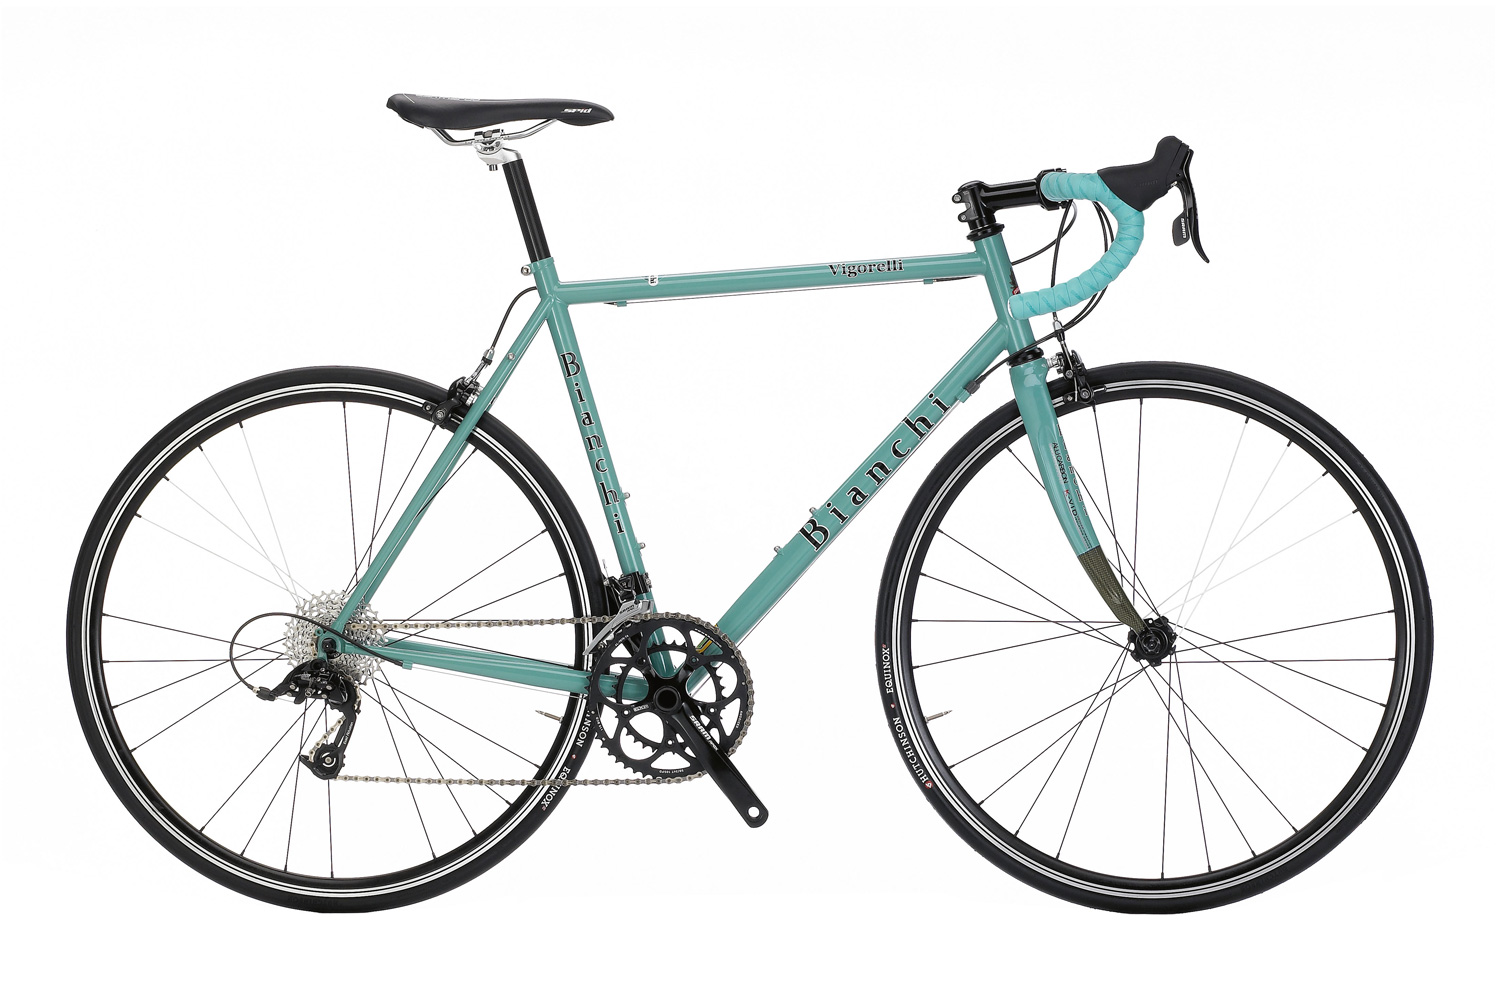 Bianchi Vigorelli Apex - Sale Price $1,399.99 (Regular Price $1,599.99)Reynolds 631 lightweight steel frame, carbon fork, SRAM Apex 2 x 10 speed doubletap shifting.Available Sizes: 51cm